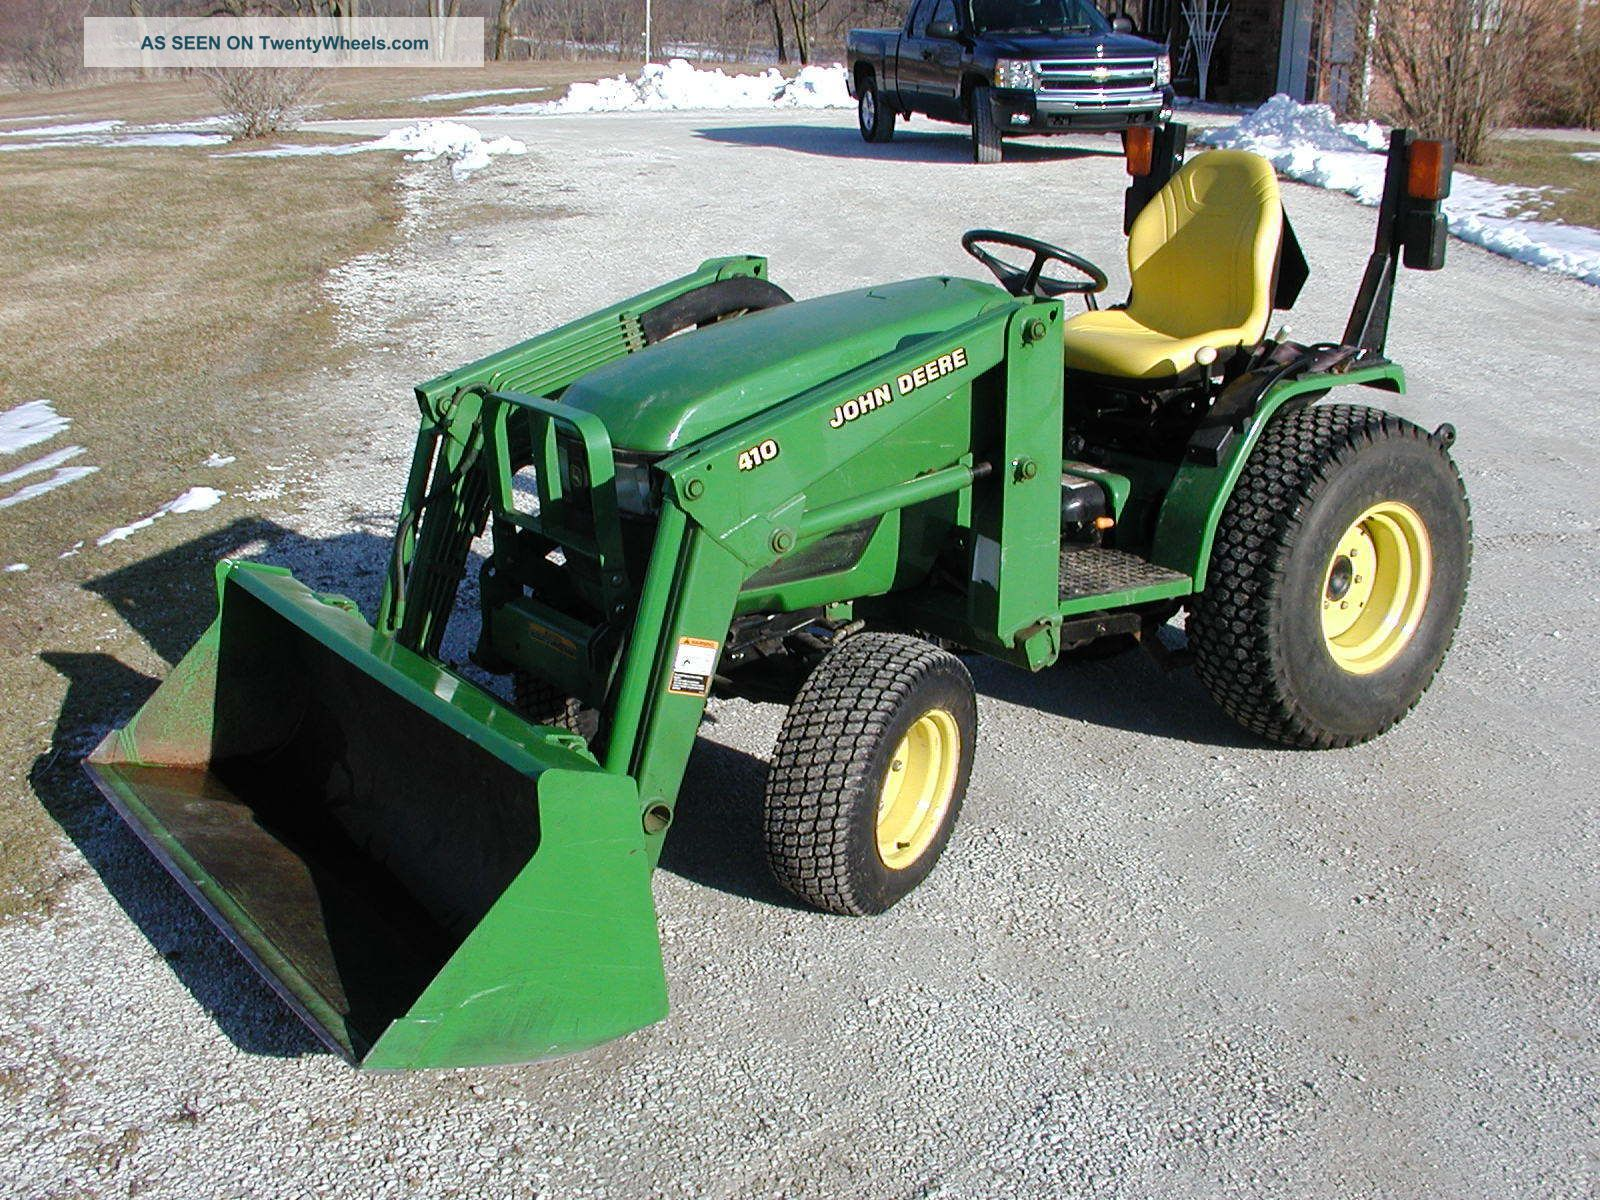 Used Lawn Tractor With Front Loader : Front end loader for john deere tractor pokemon go